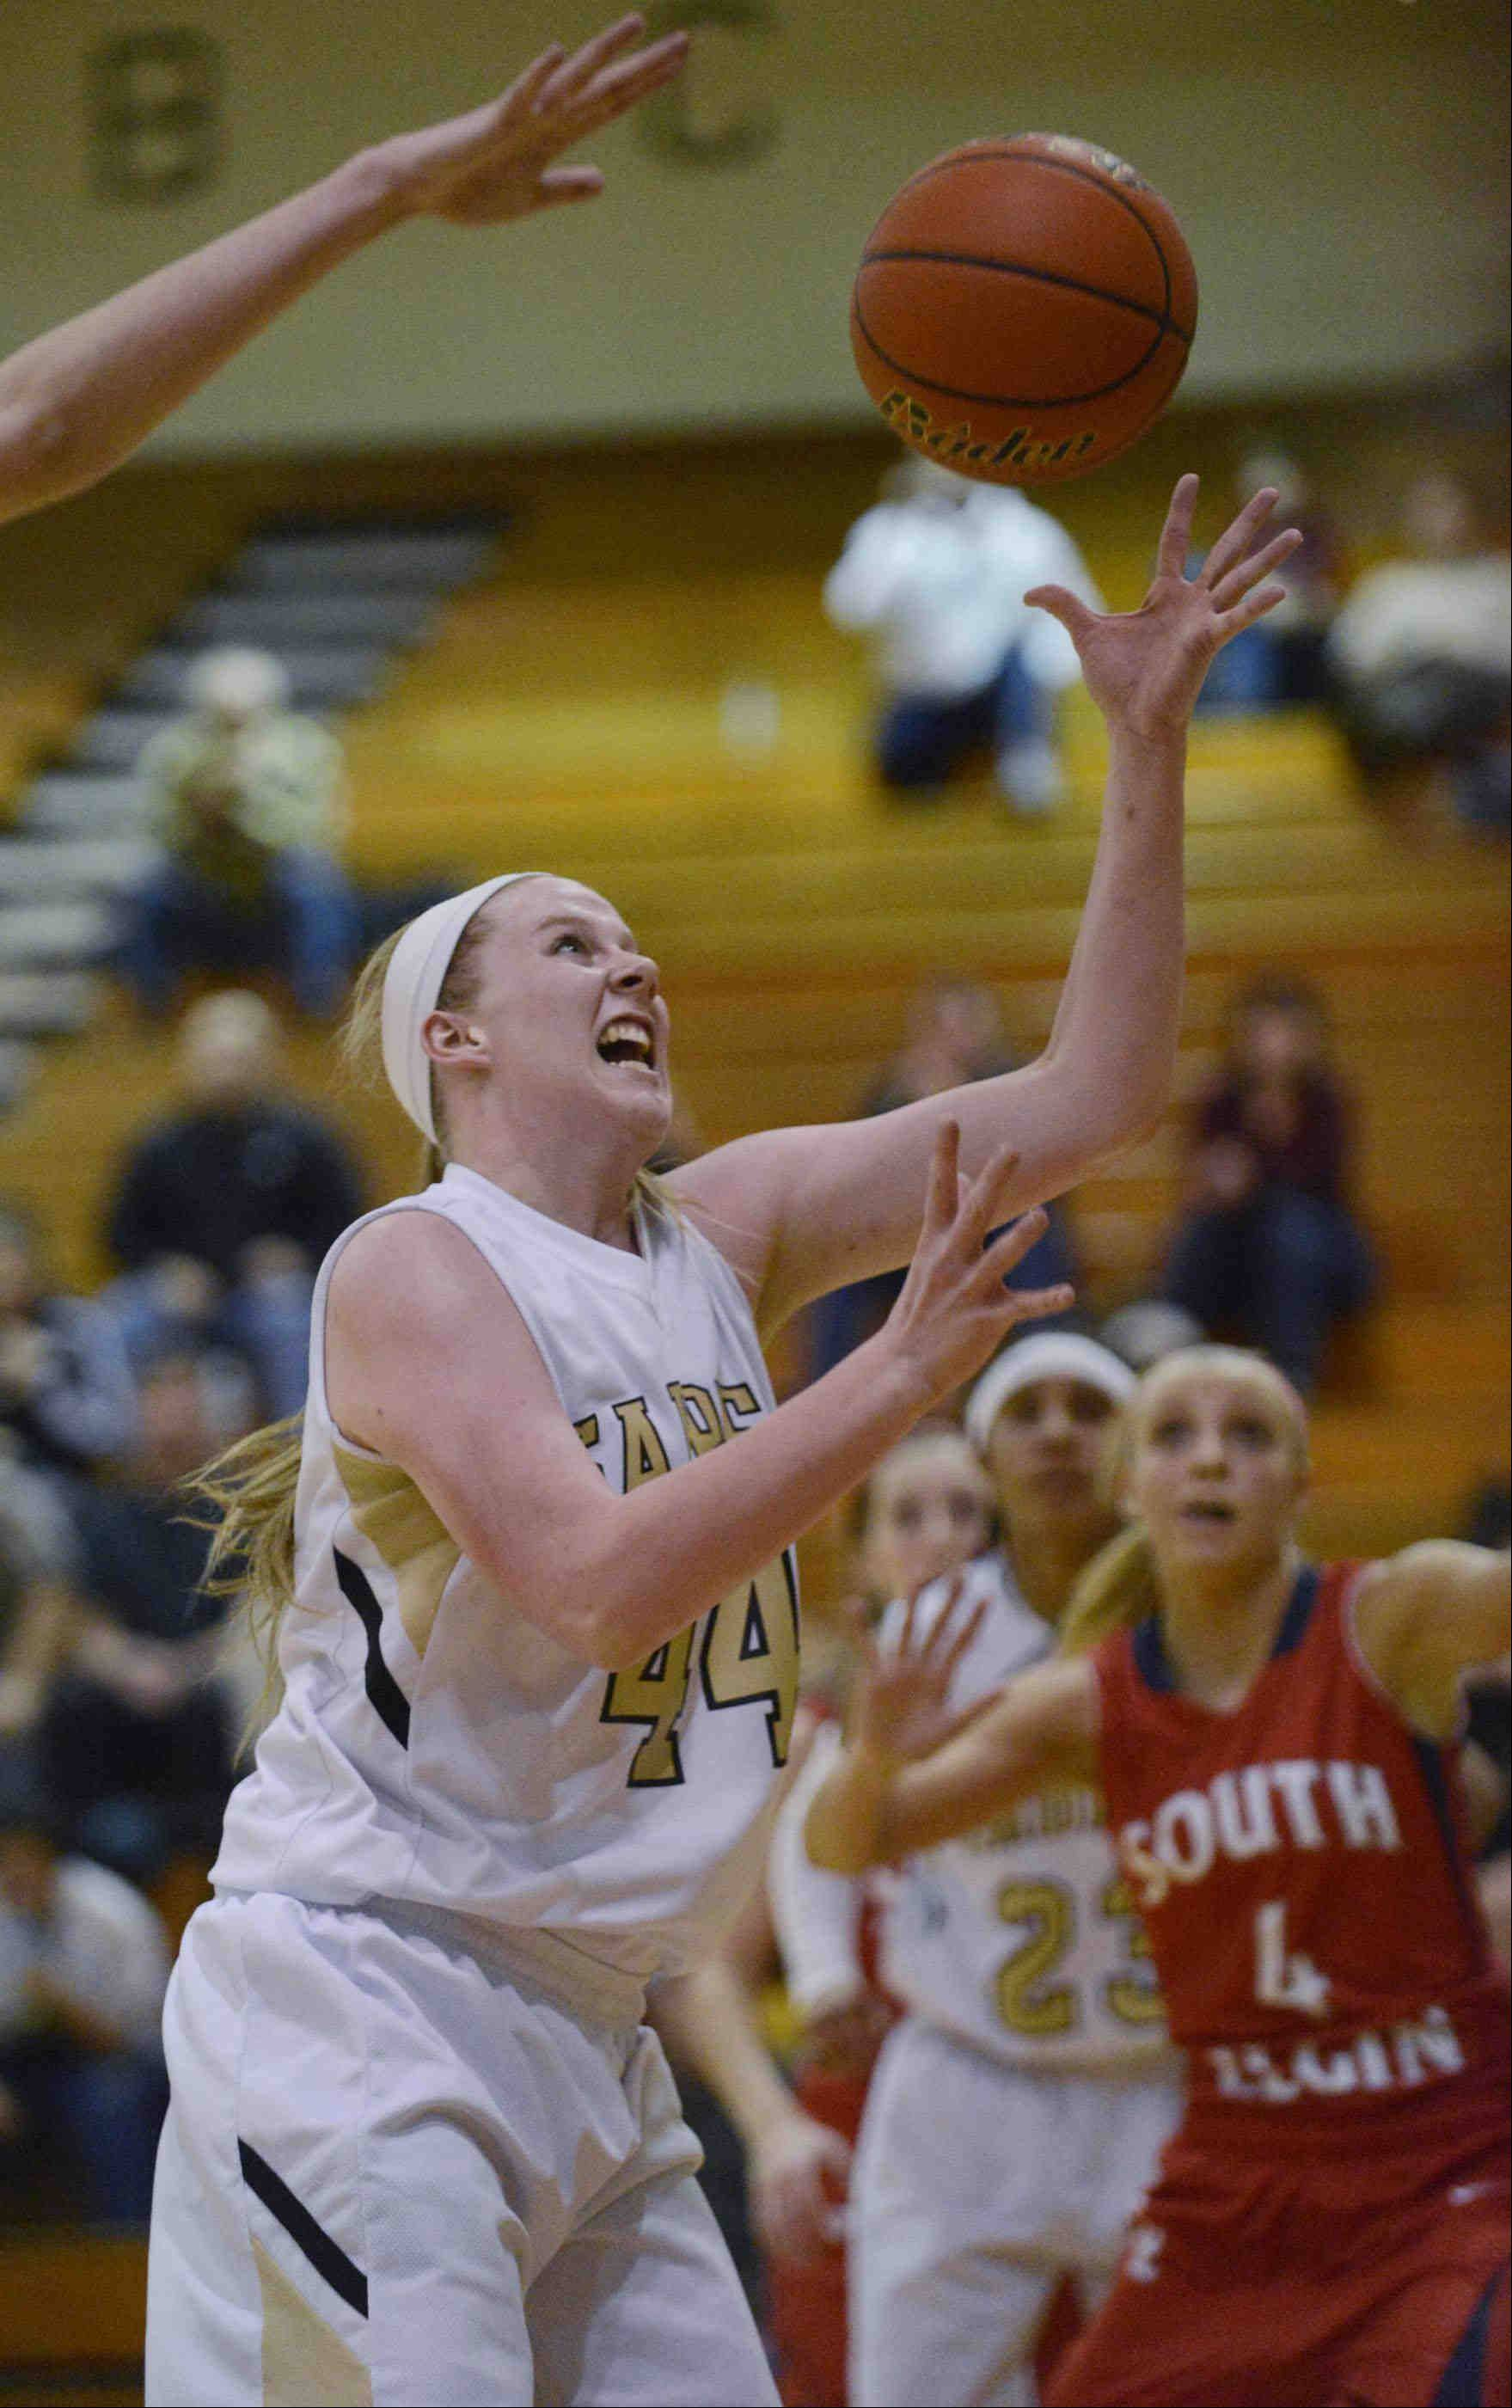 Streamwood's Hannah McGlone grabs a rebound against South Elgin in the Class 4A regional championship game Thursday in Streamwood.